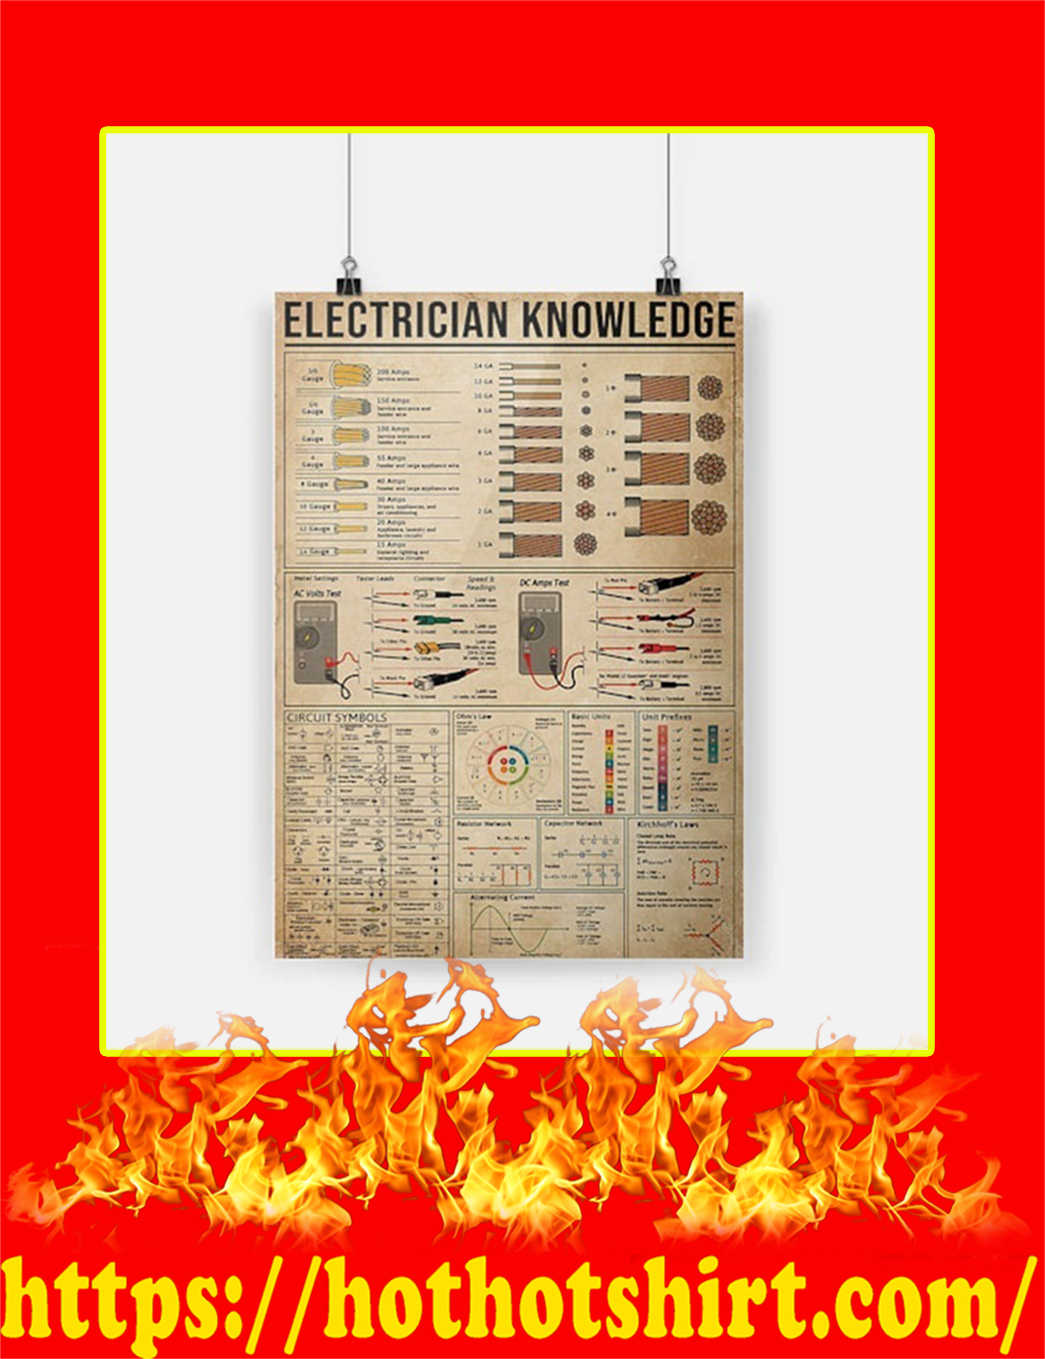 Electrician Knowledge Poster - A1